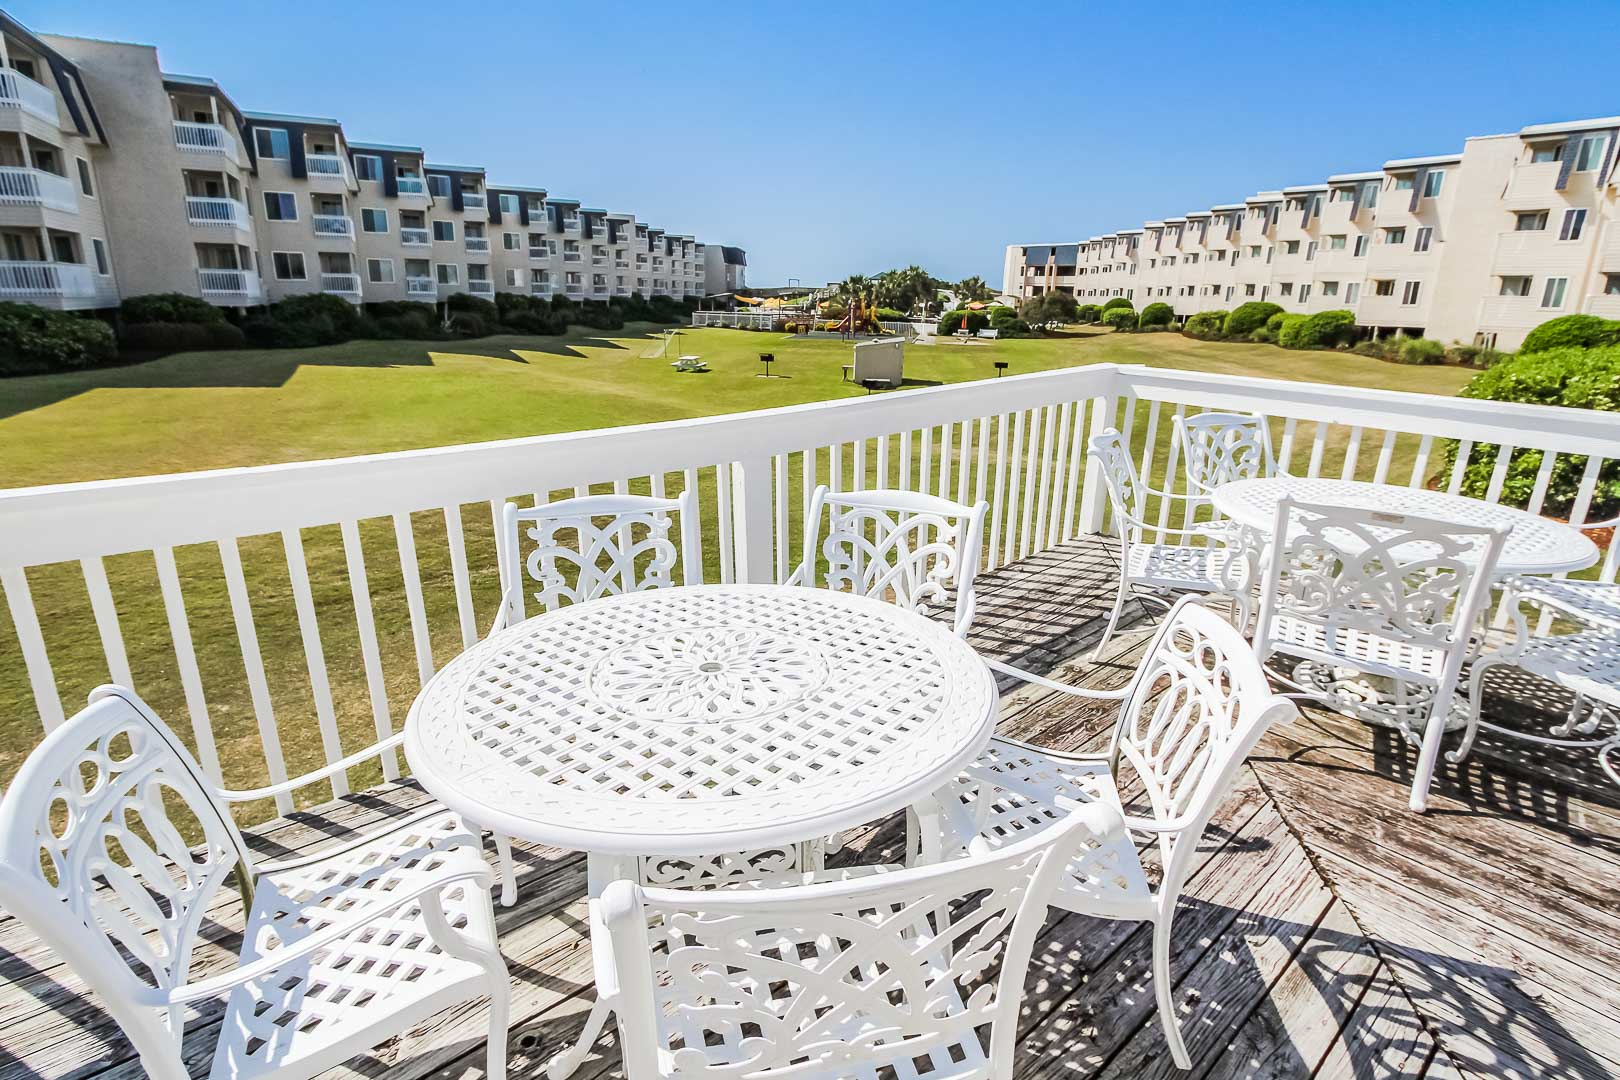 A relaxing patio deck at VRI's A Place at the Beach III in North Carolina